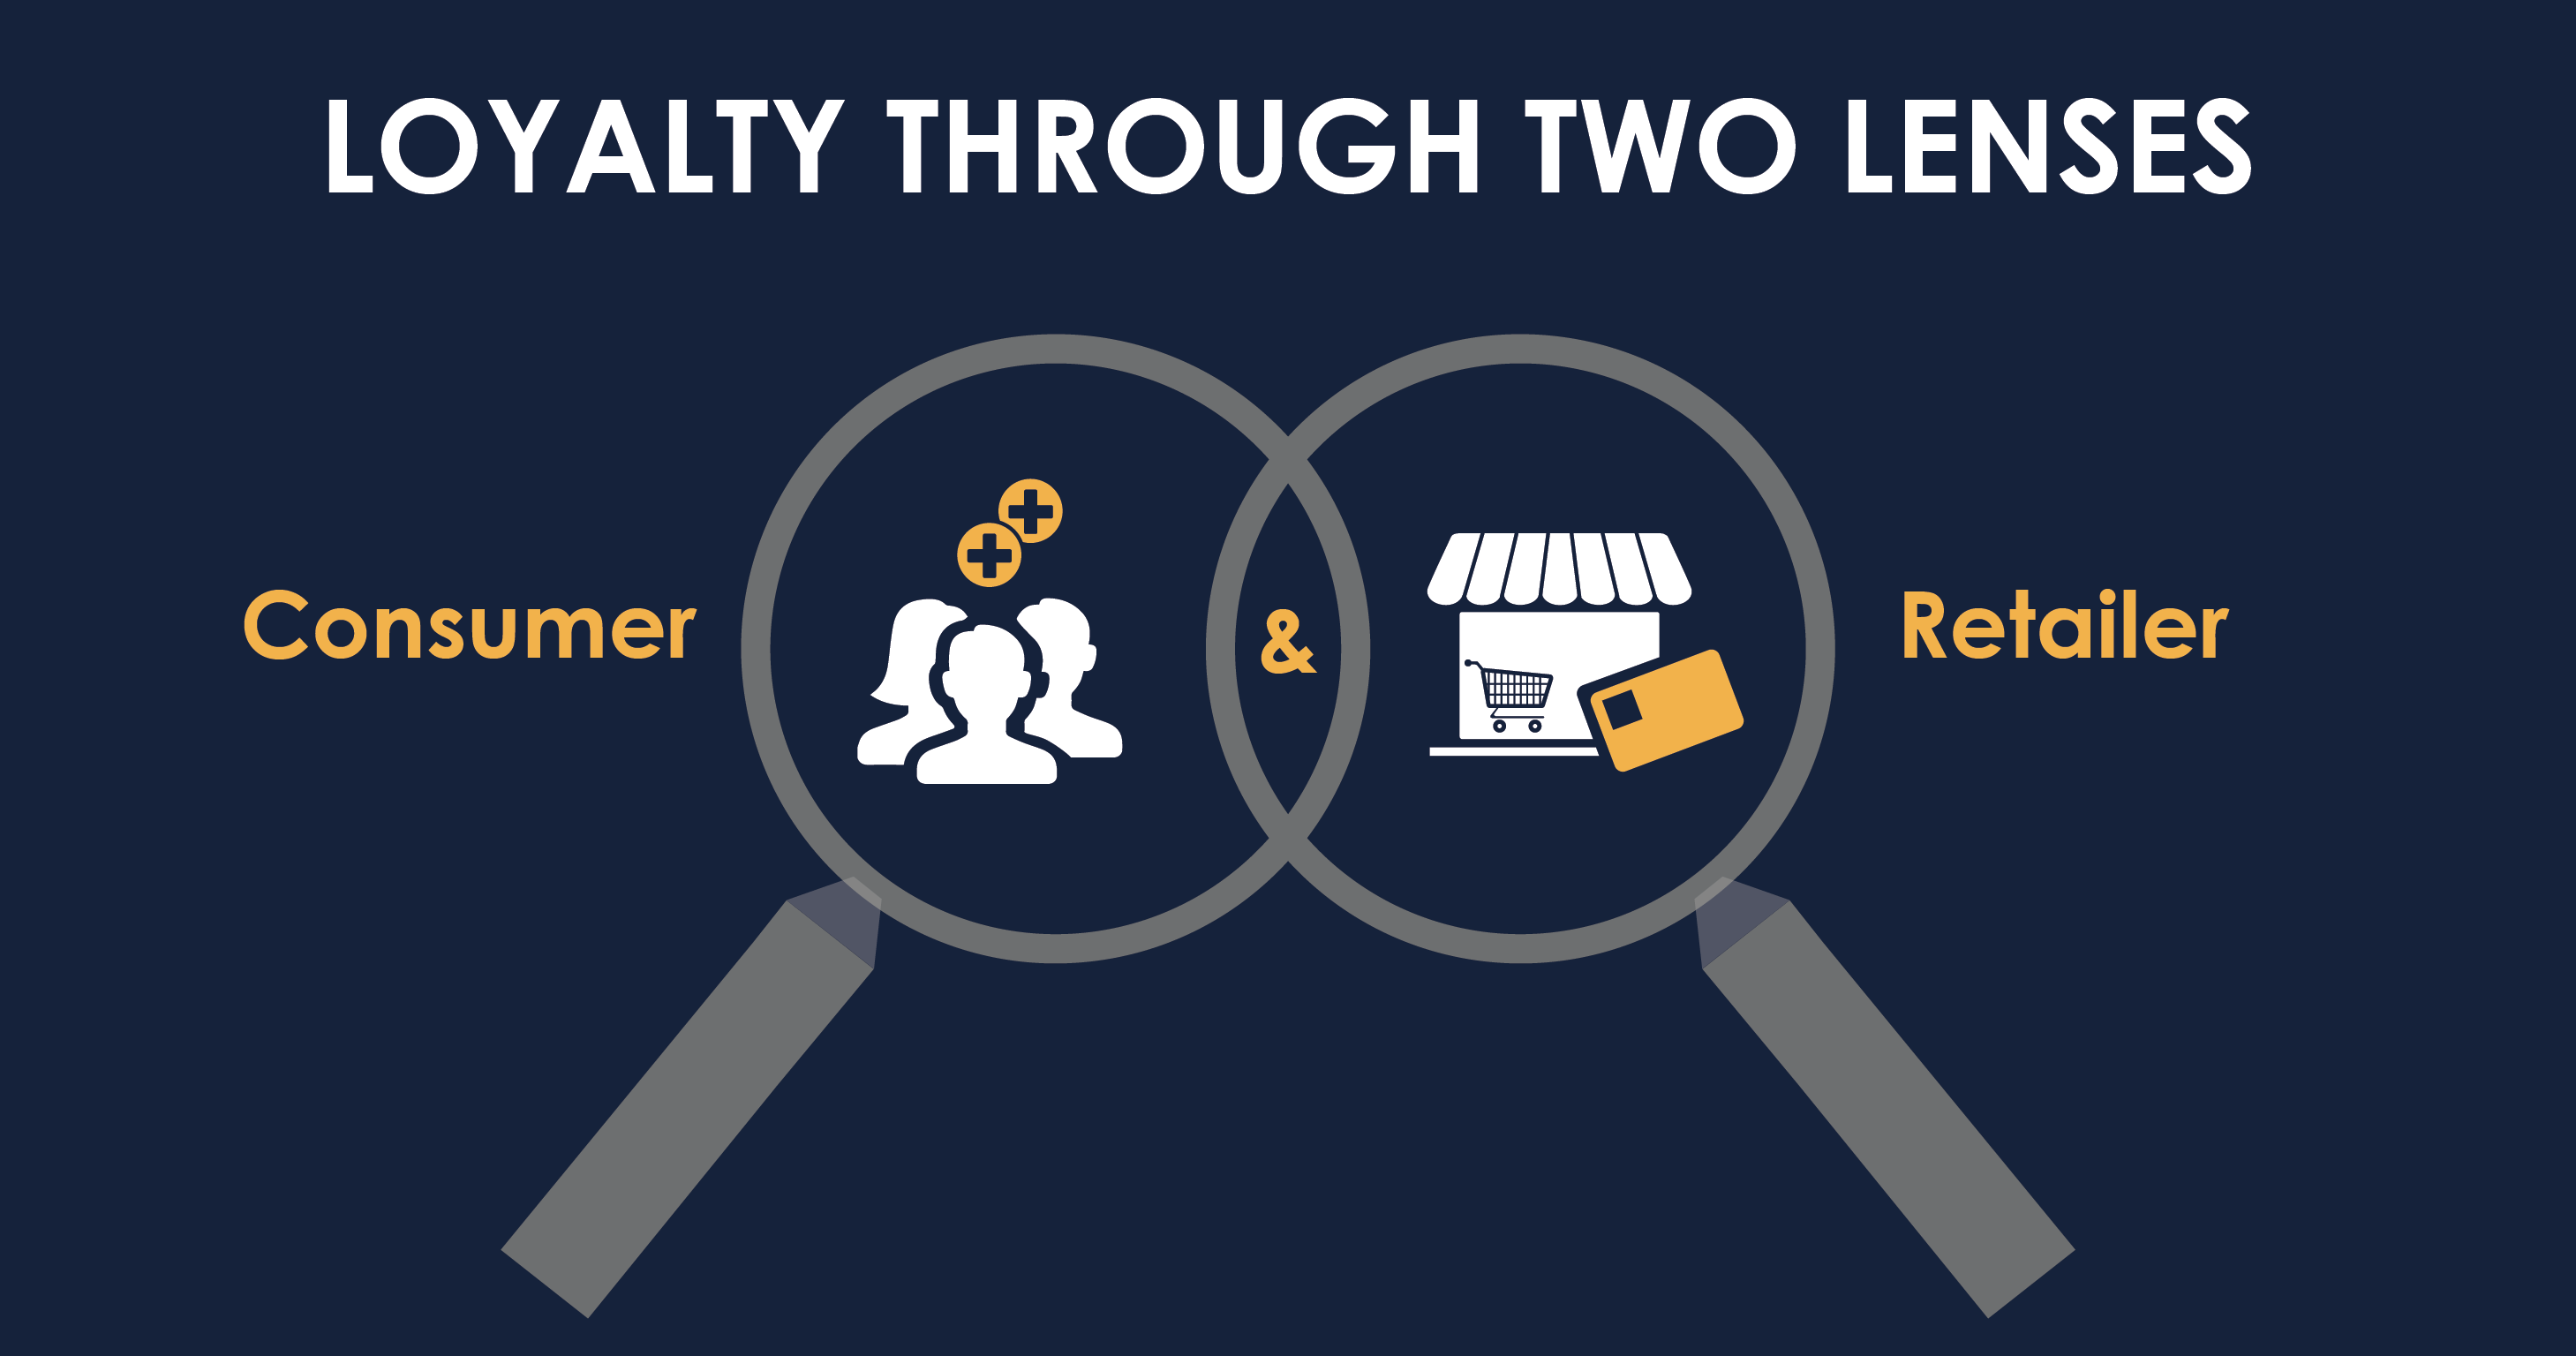 Loyalty Through Two Lenses: Retailers & Consumer